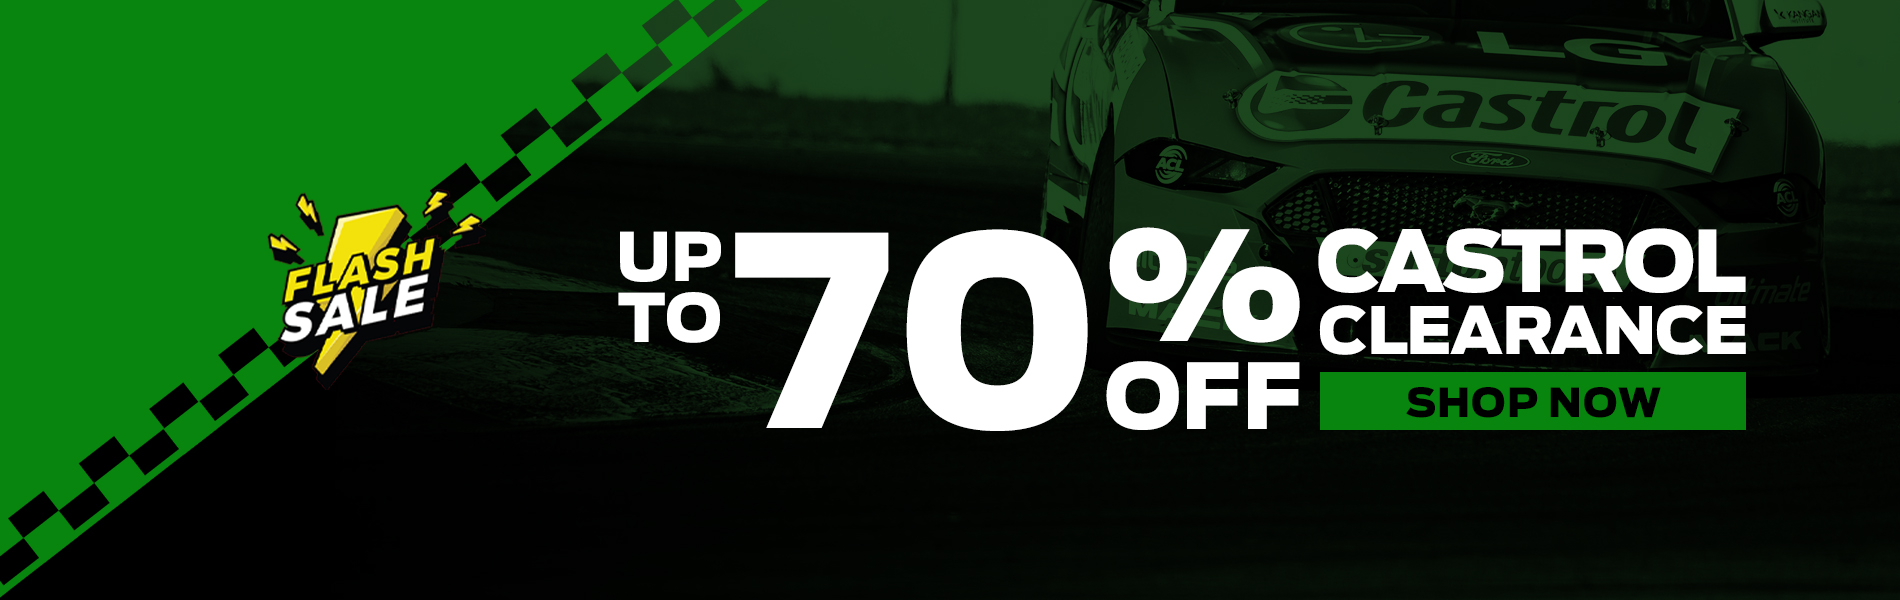 Castrol-Clearance-up-to-70-off-Homepage-Flash